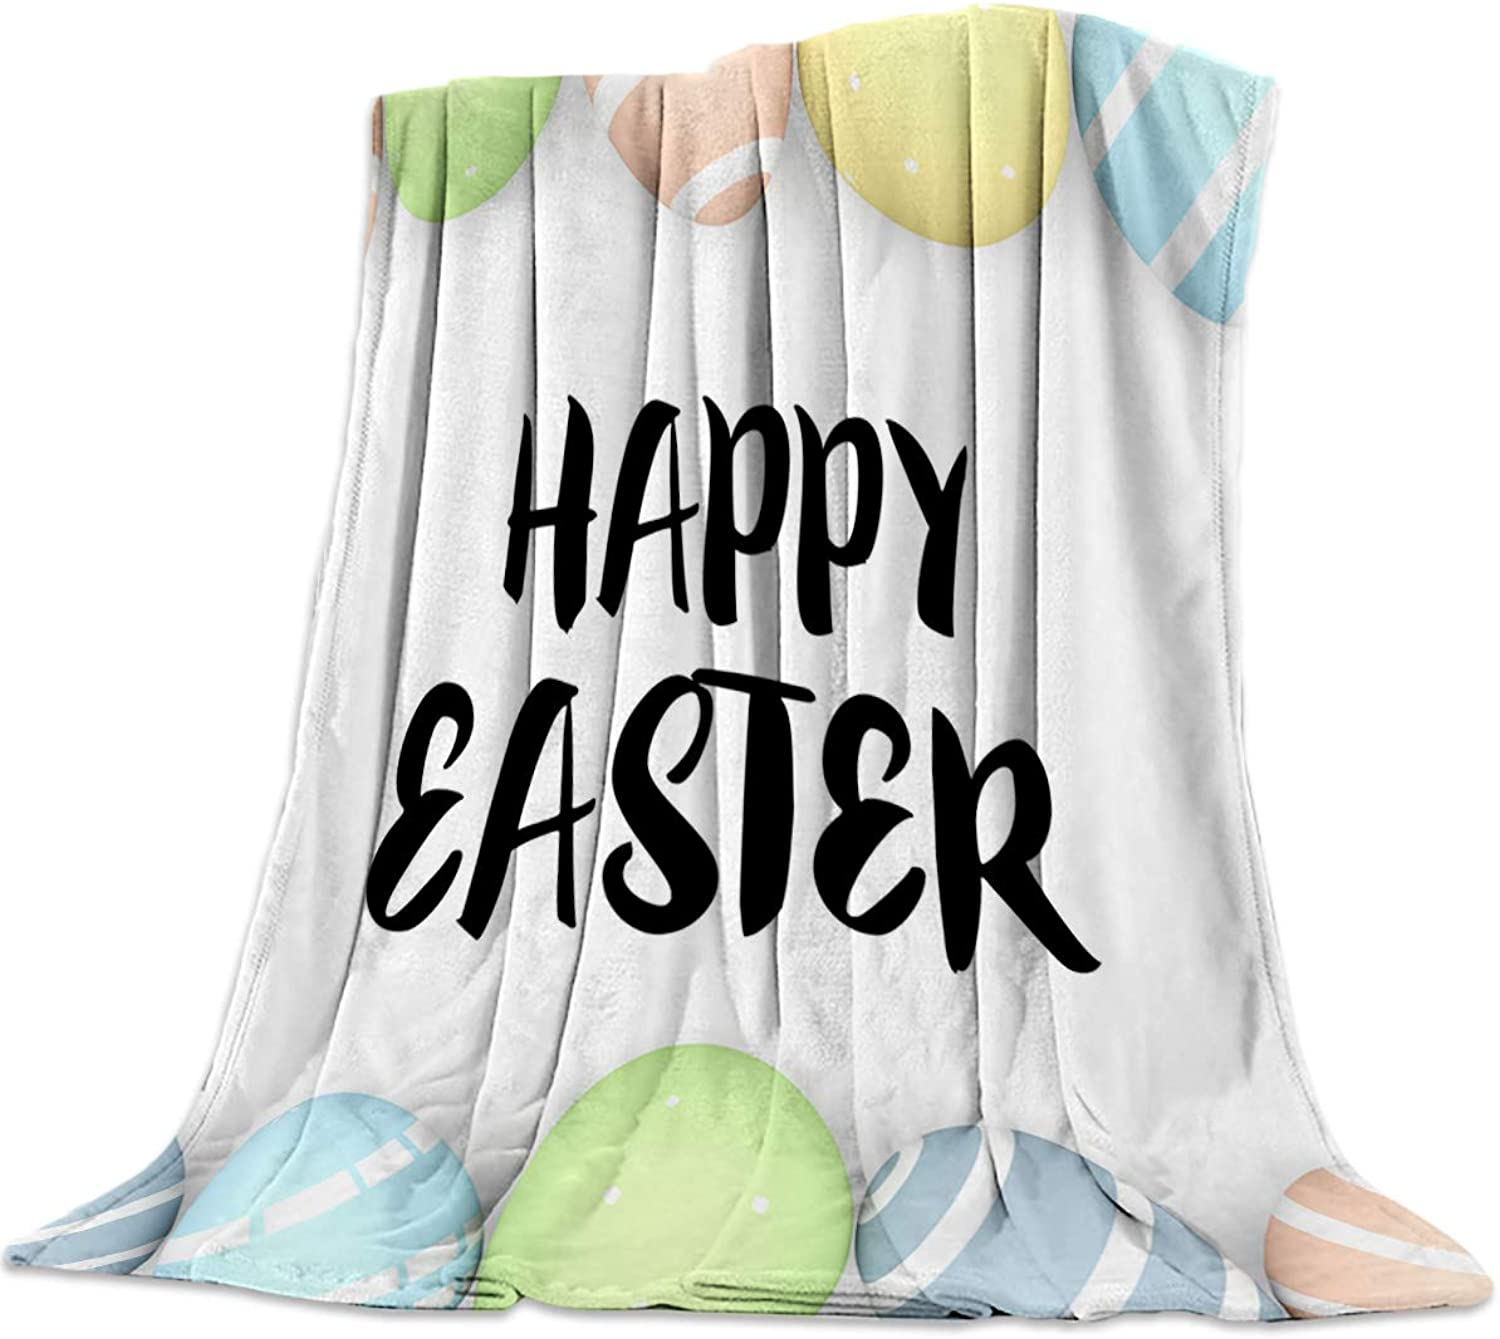 Cozy Warm Lightweight Microfiber Throw Blankets, Soft Reversible Flannel Fleece Bed Throw Happy Easter Day Easter Eggs,Luxury Fuzzy Blankets for Adults Girls Kids Boys Dogs Couch,39''W x 49''L